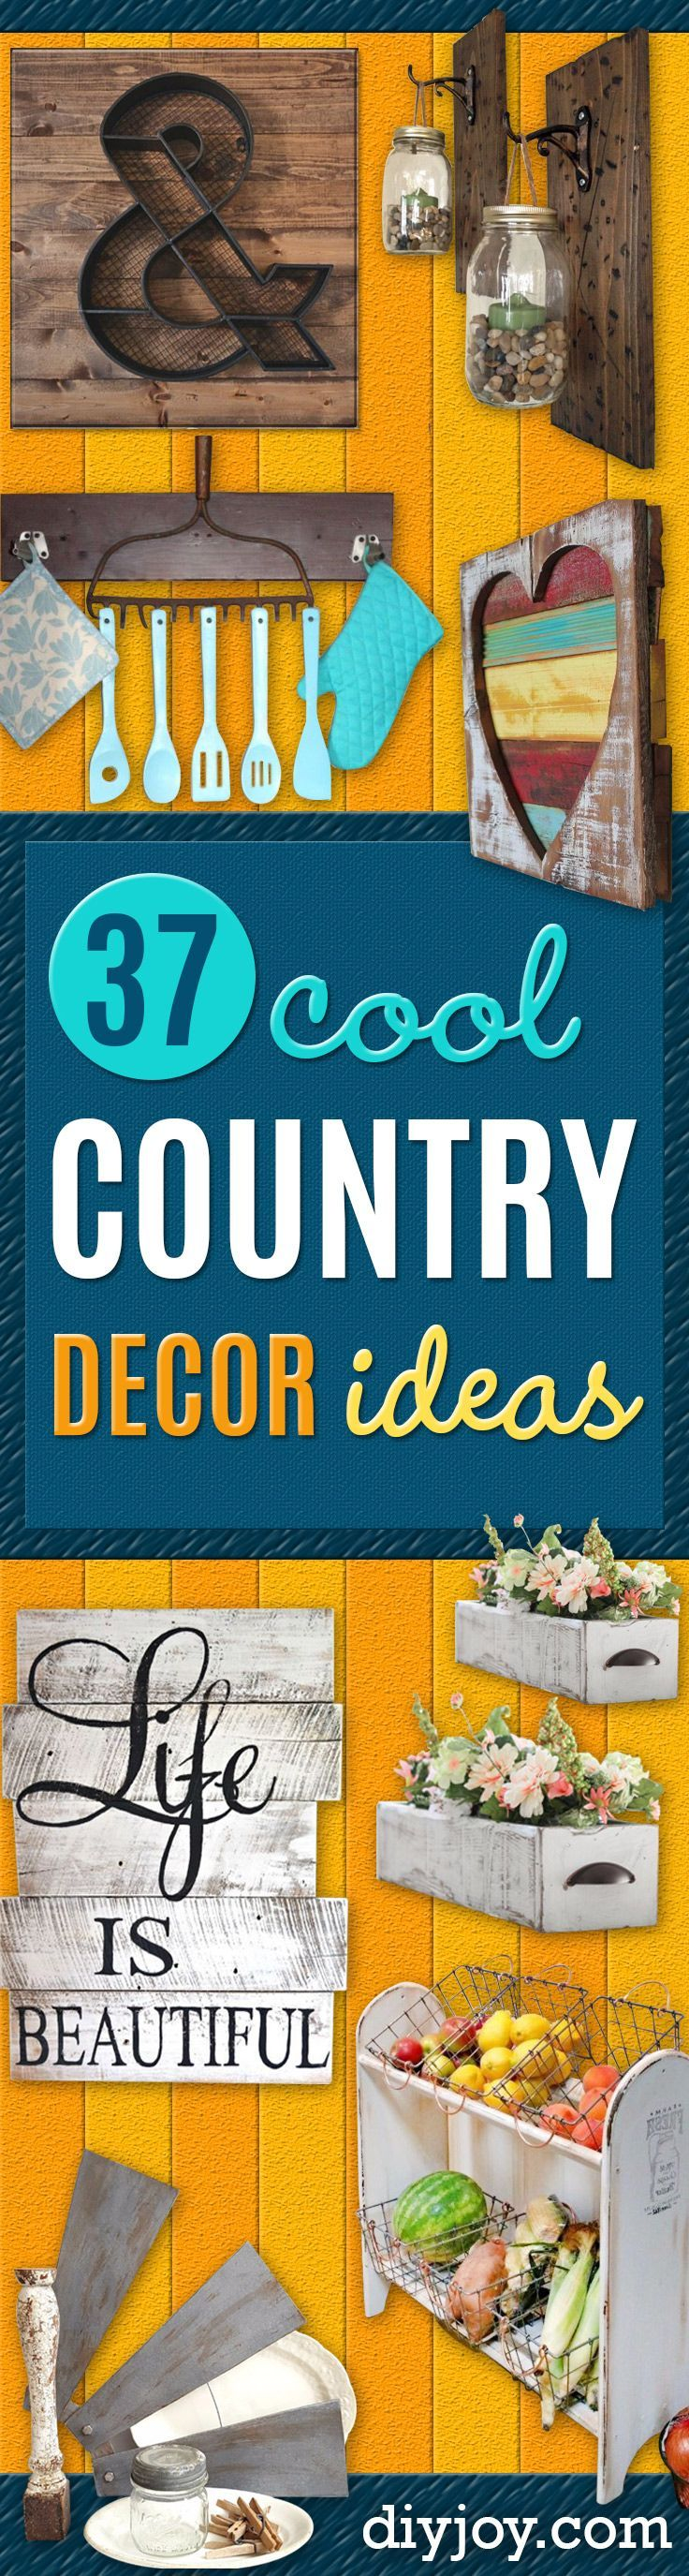 Best Country Decor Ideas - Rustic Farmhouse Decor Tutorials and Easy Vintage Shabby Chic Home Decor for Kitchen, Living Room and Bathroom - Creative Country Crafts, Rustic Wall Art and Accessories to Make and Sell http://diyjoy.com/country-decor-ideas